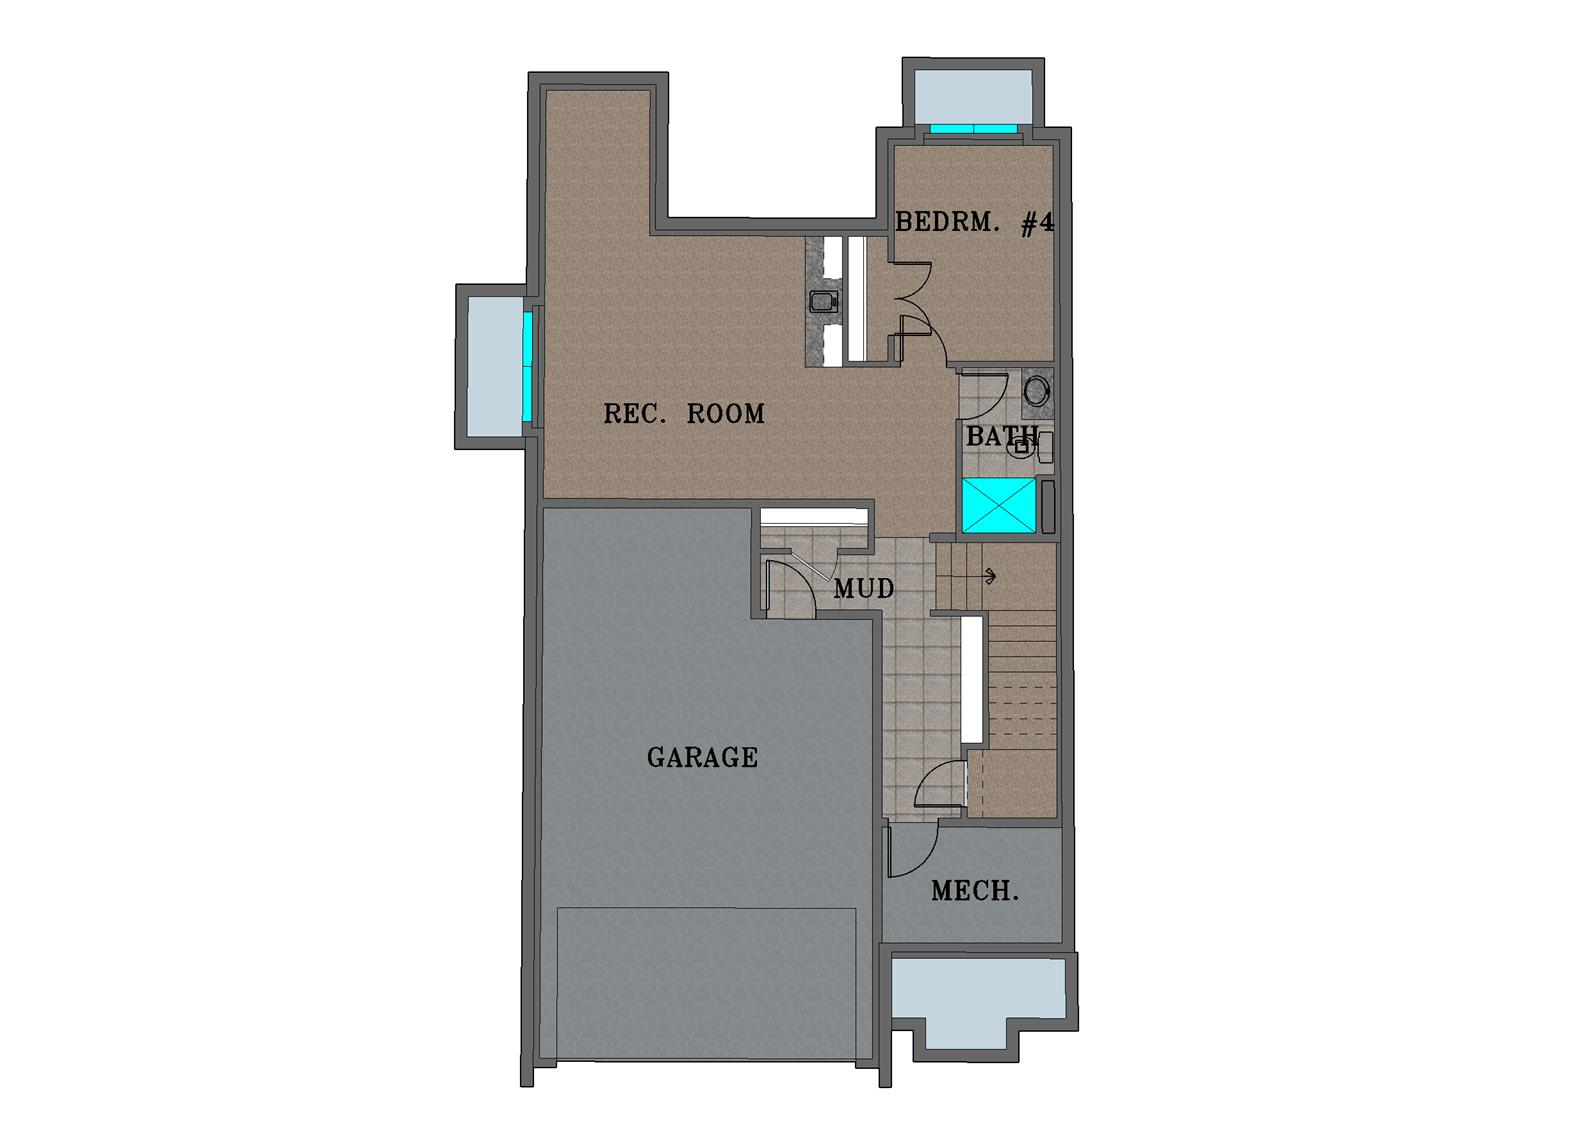 Basement Floor Plan Color Rendering